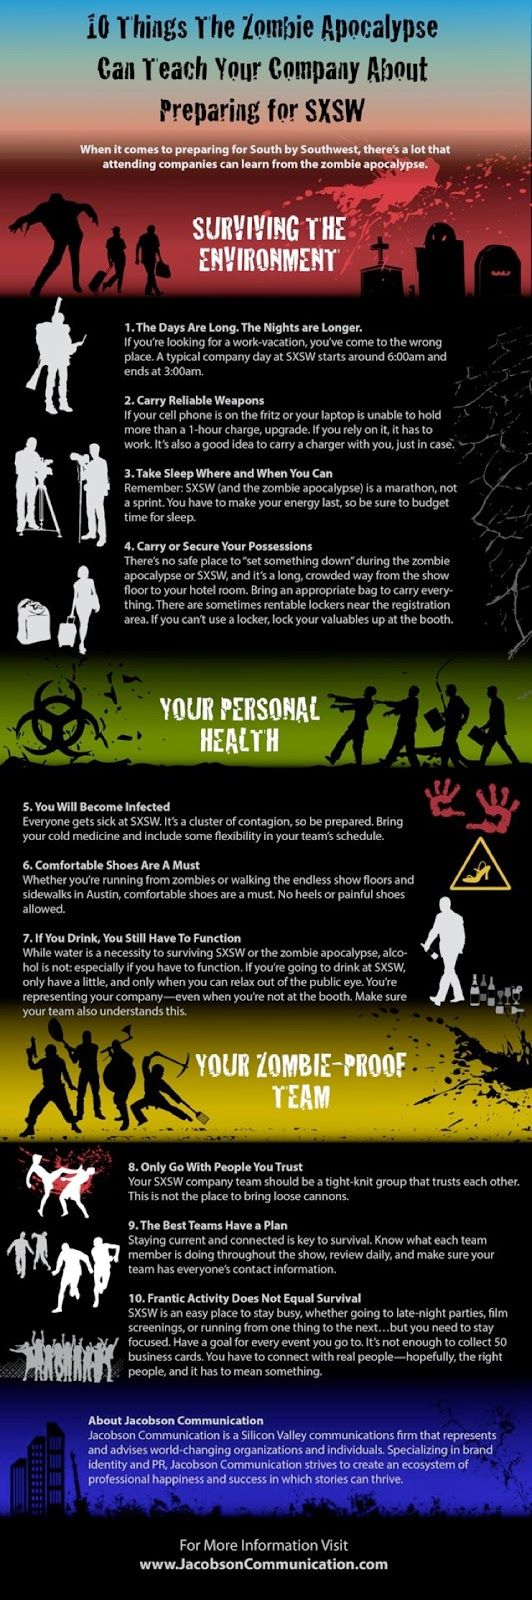 Zombob's Zombie News and Reviews: 10 Tips for Surviving the SXSW Zombie Apocalypse